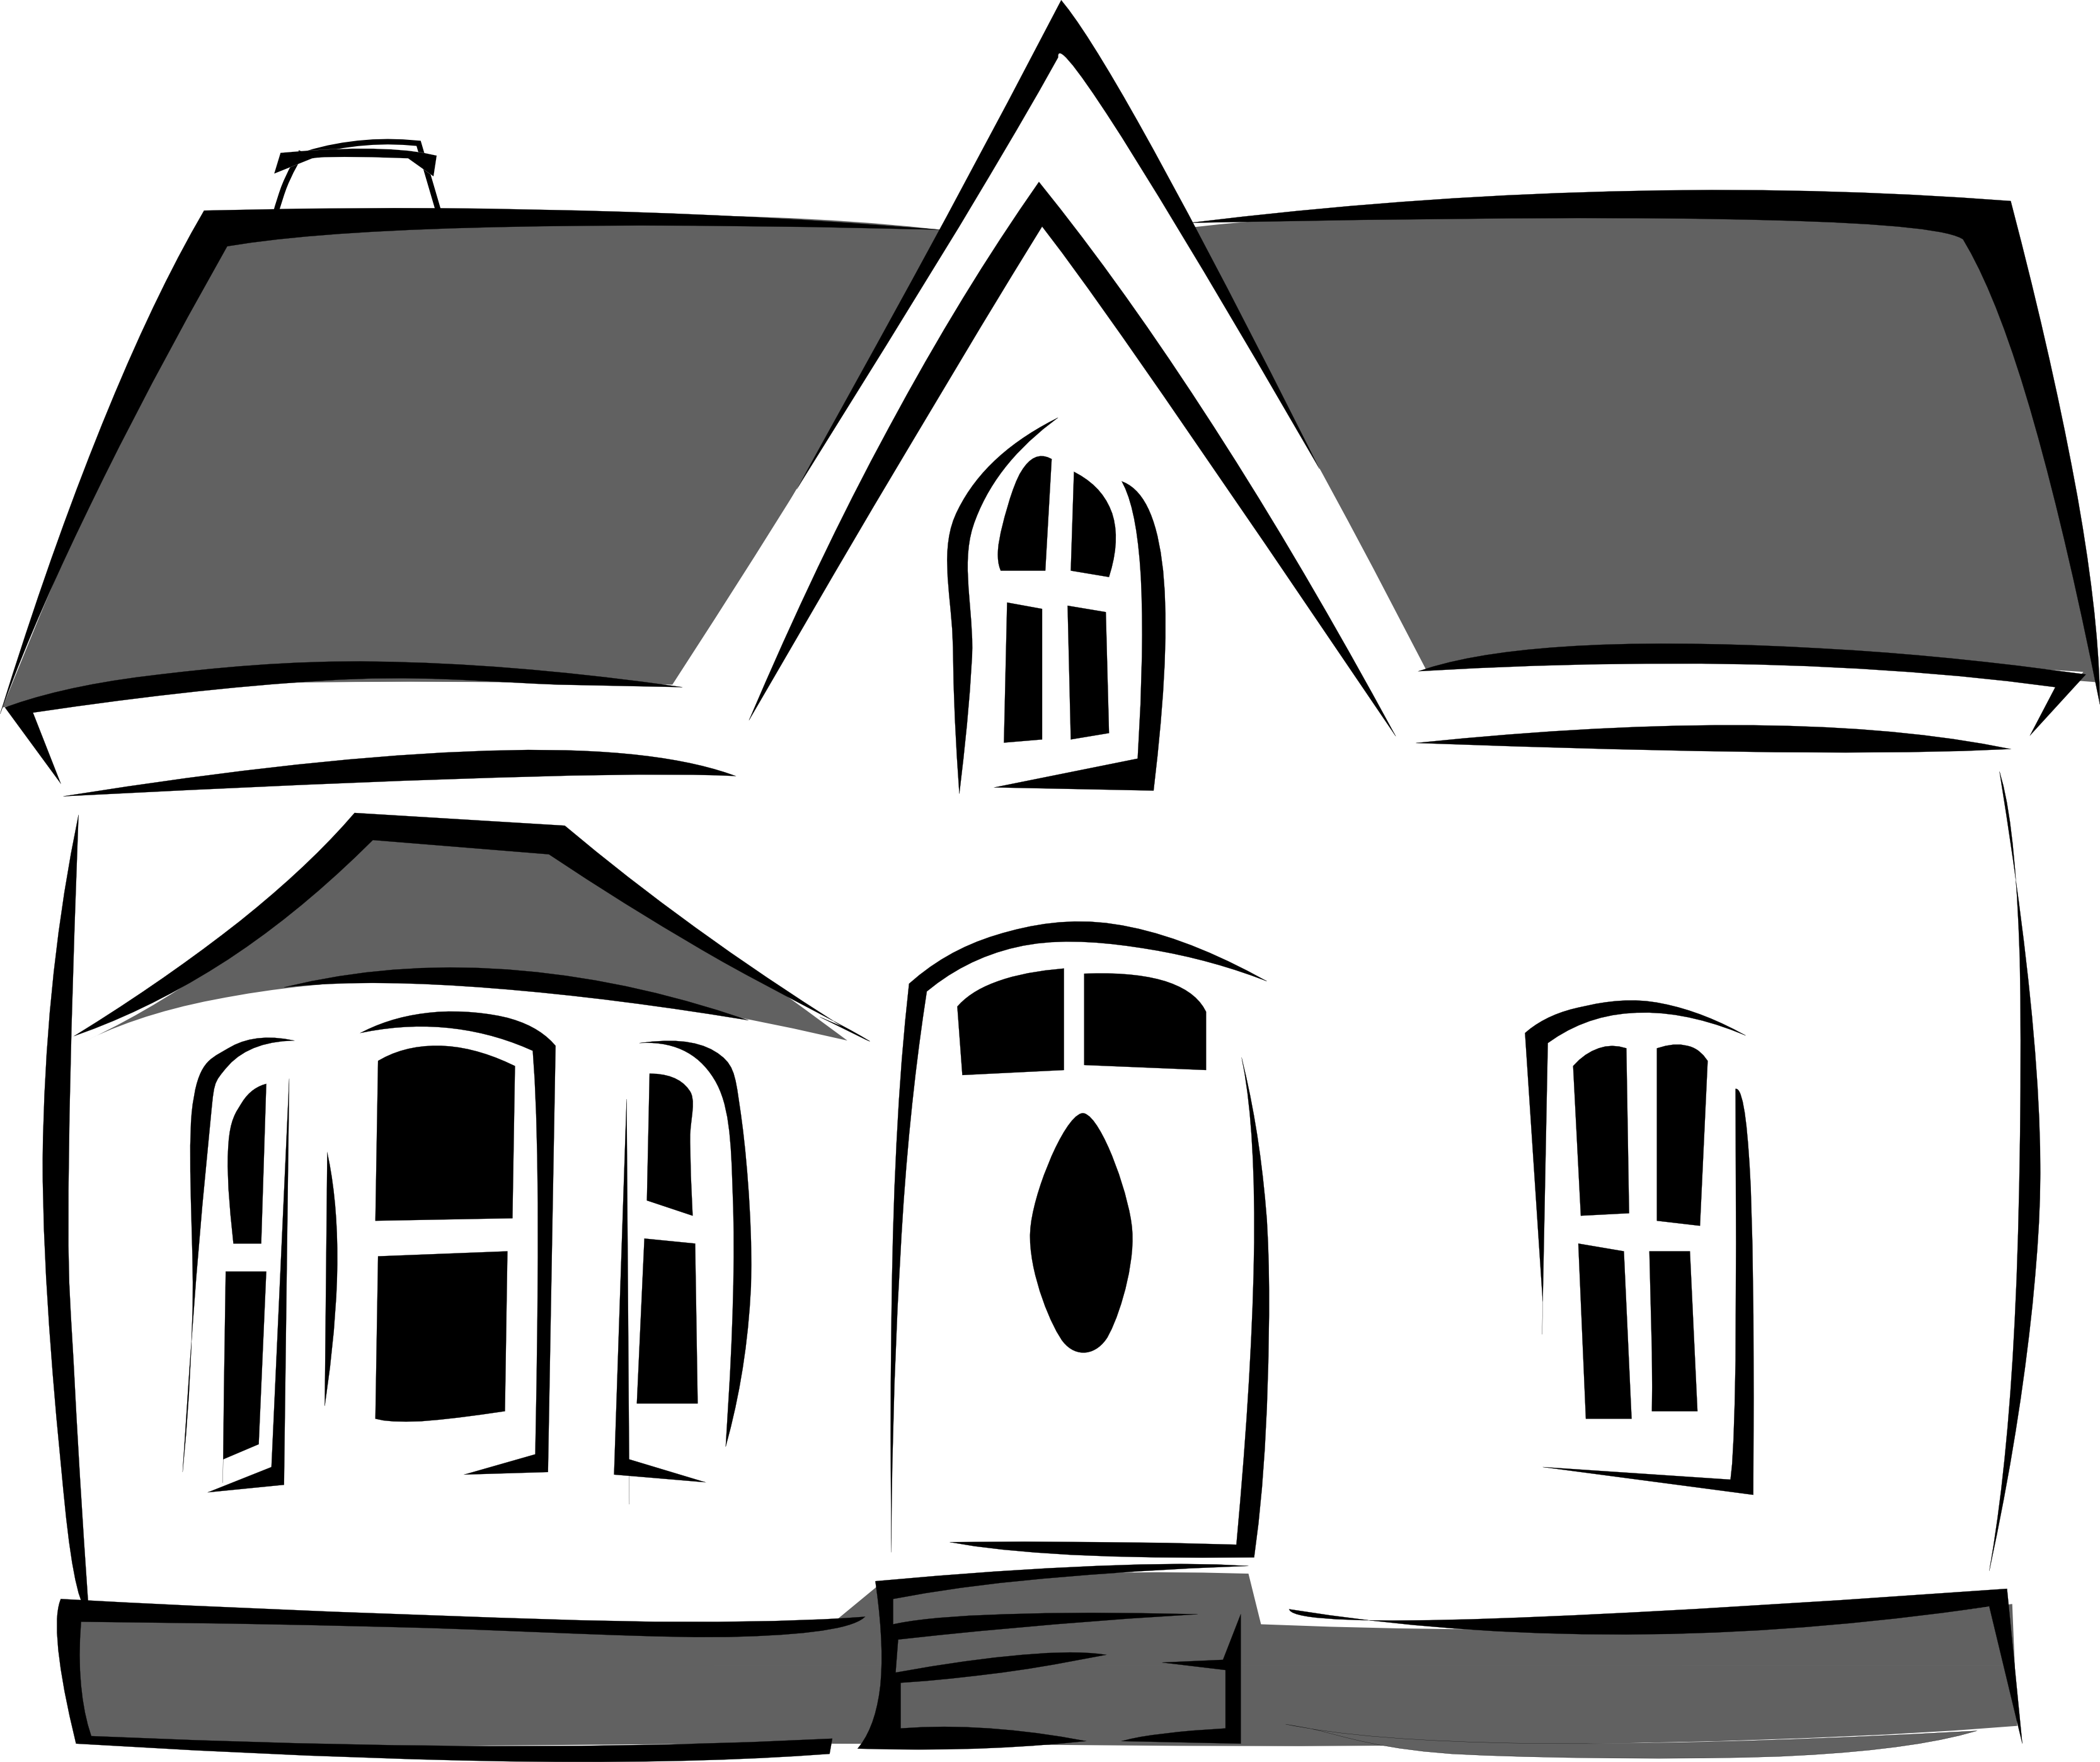 Transparent building black and white. Home house clipart collection